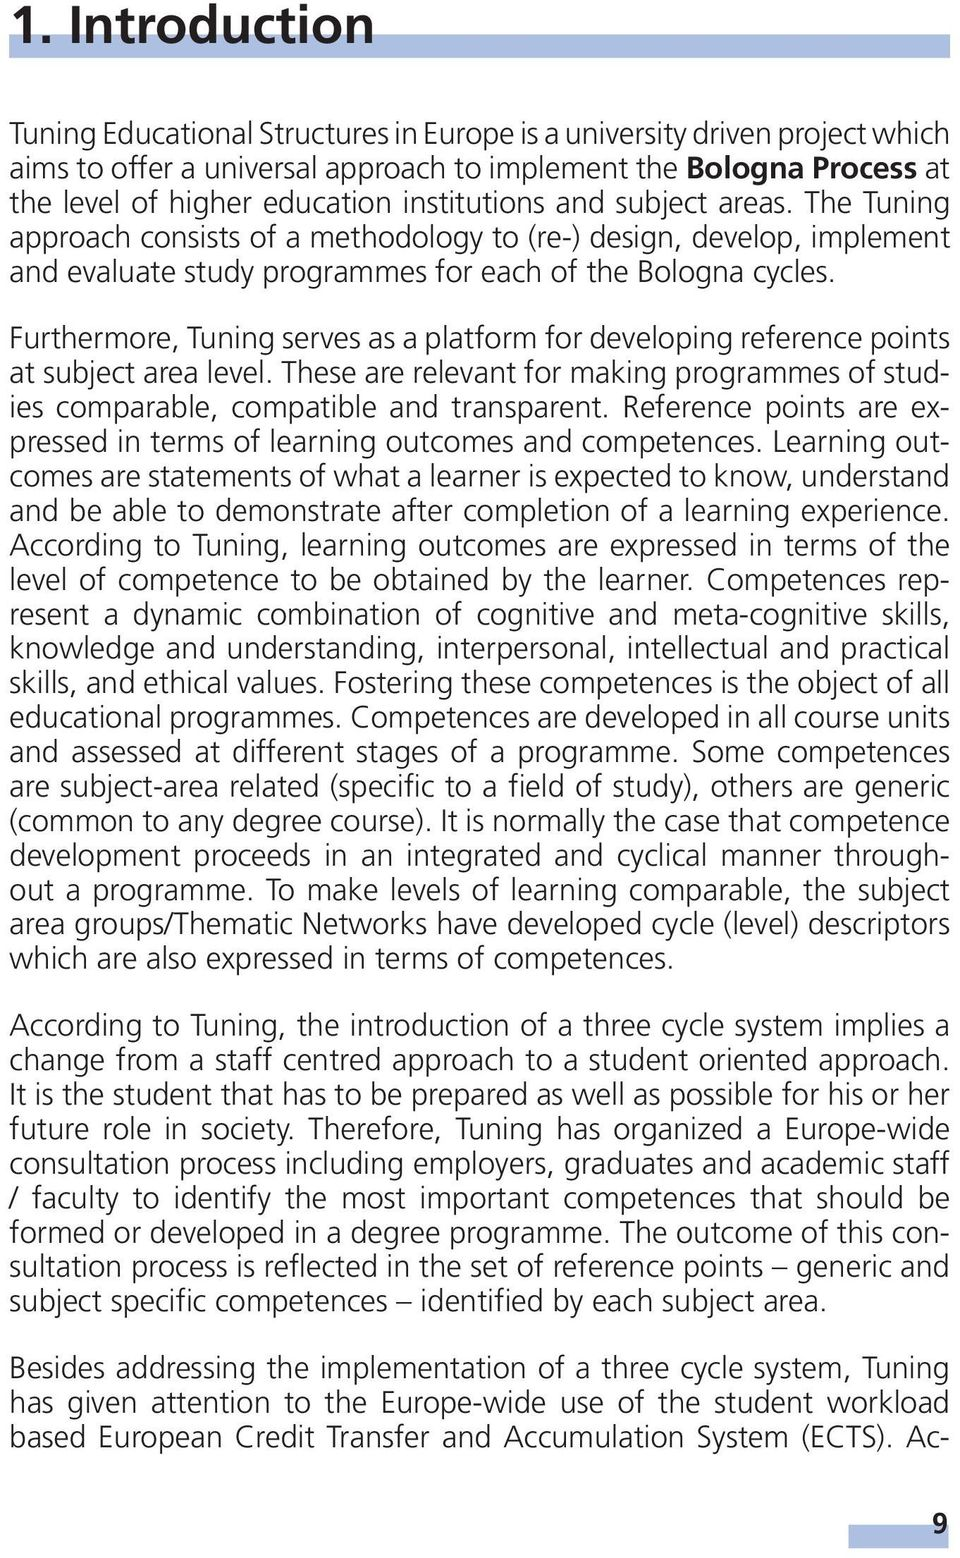 Furthermore, Tuning serves as a platform for developing reference points at subject area level. These are relevant for making programmes of studies comparable, compatible and transparent.